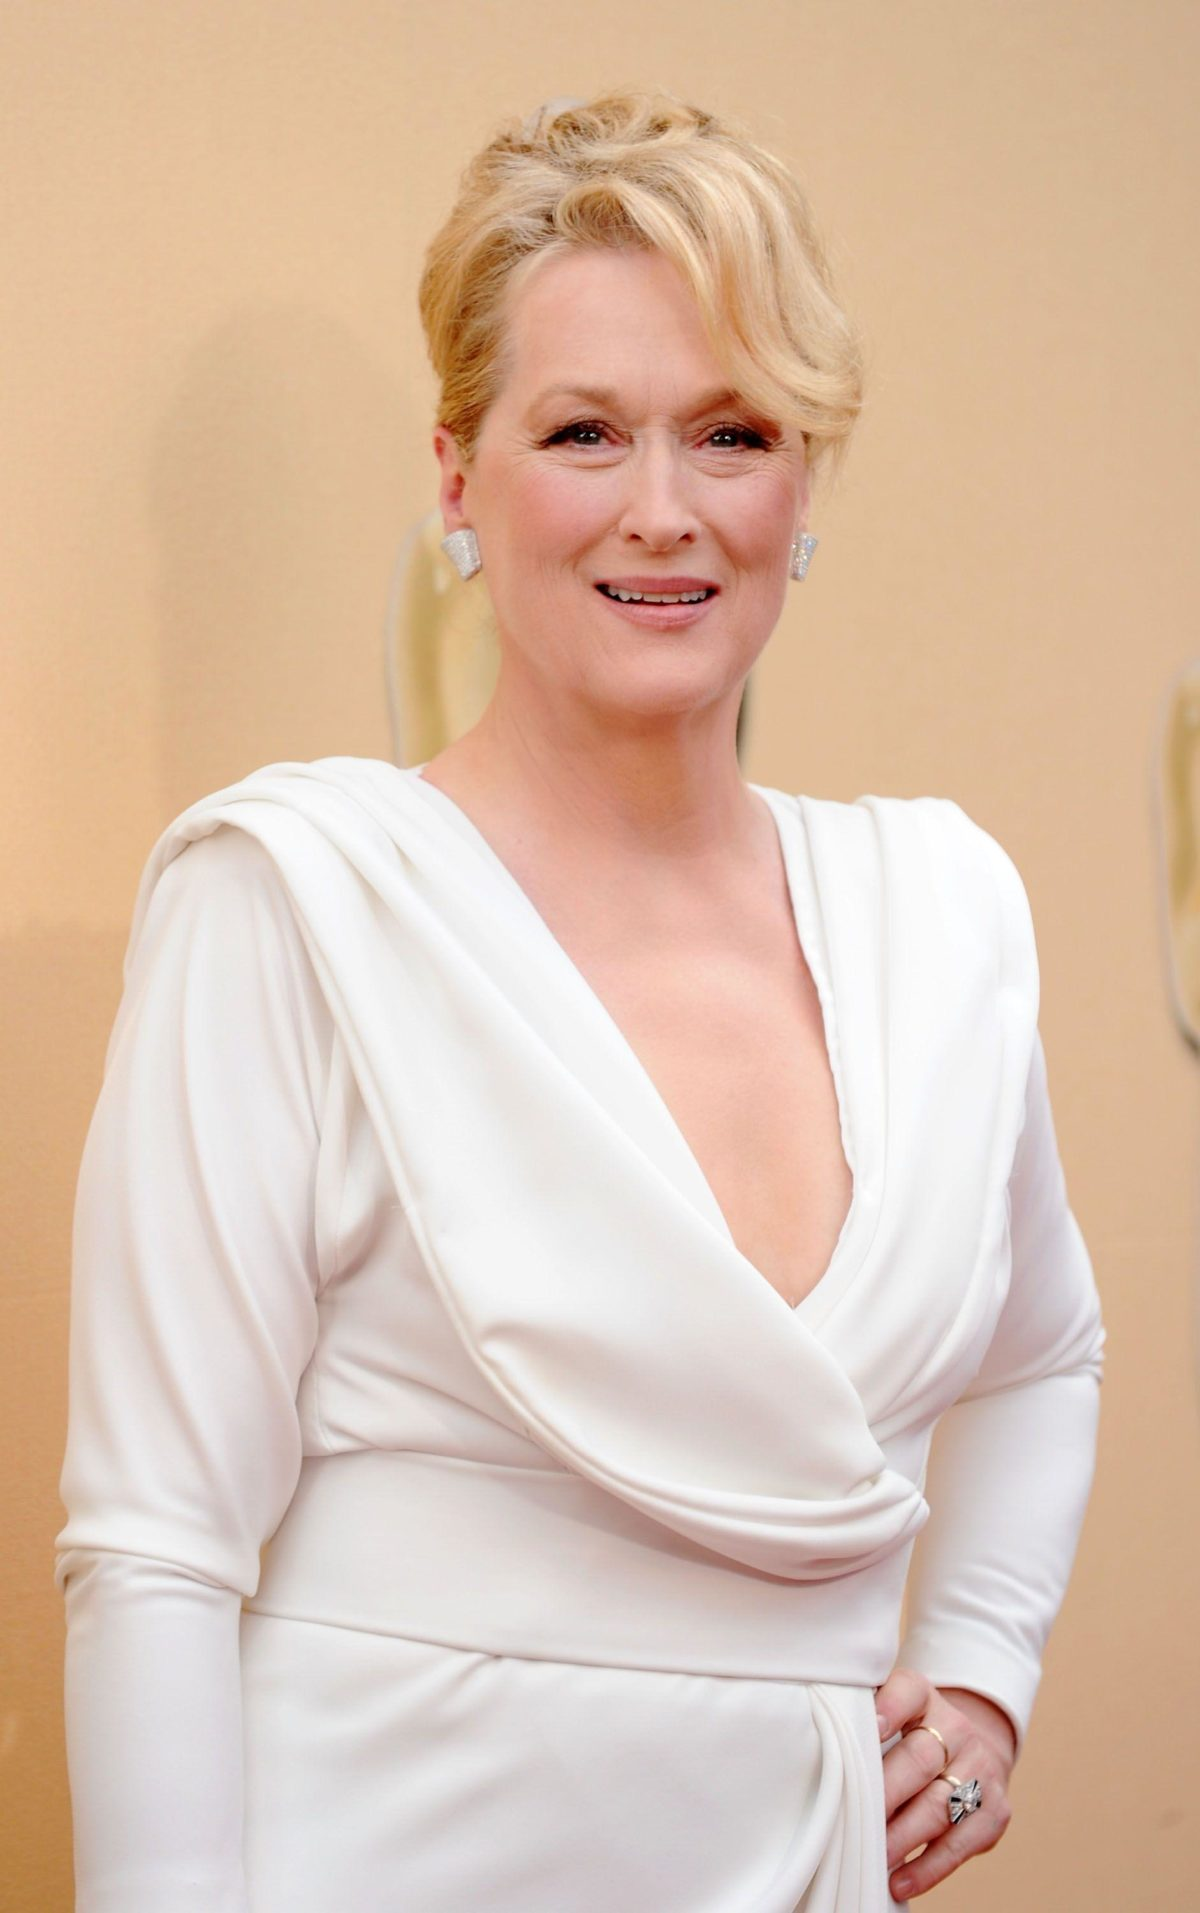 Meryl Streep photo 265 of 400 pics, wallpaper – photo #480992 …